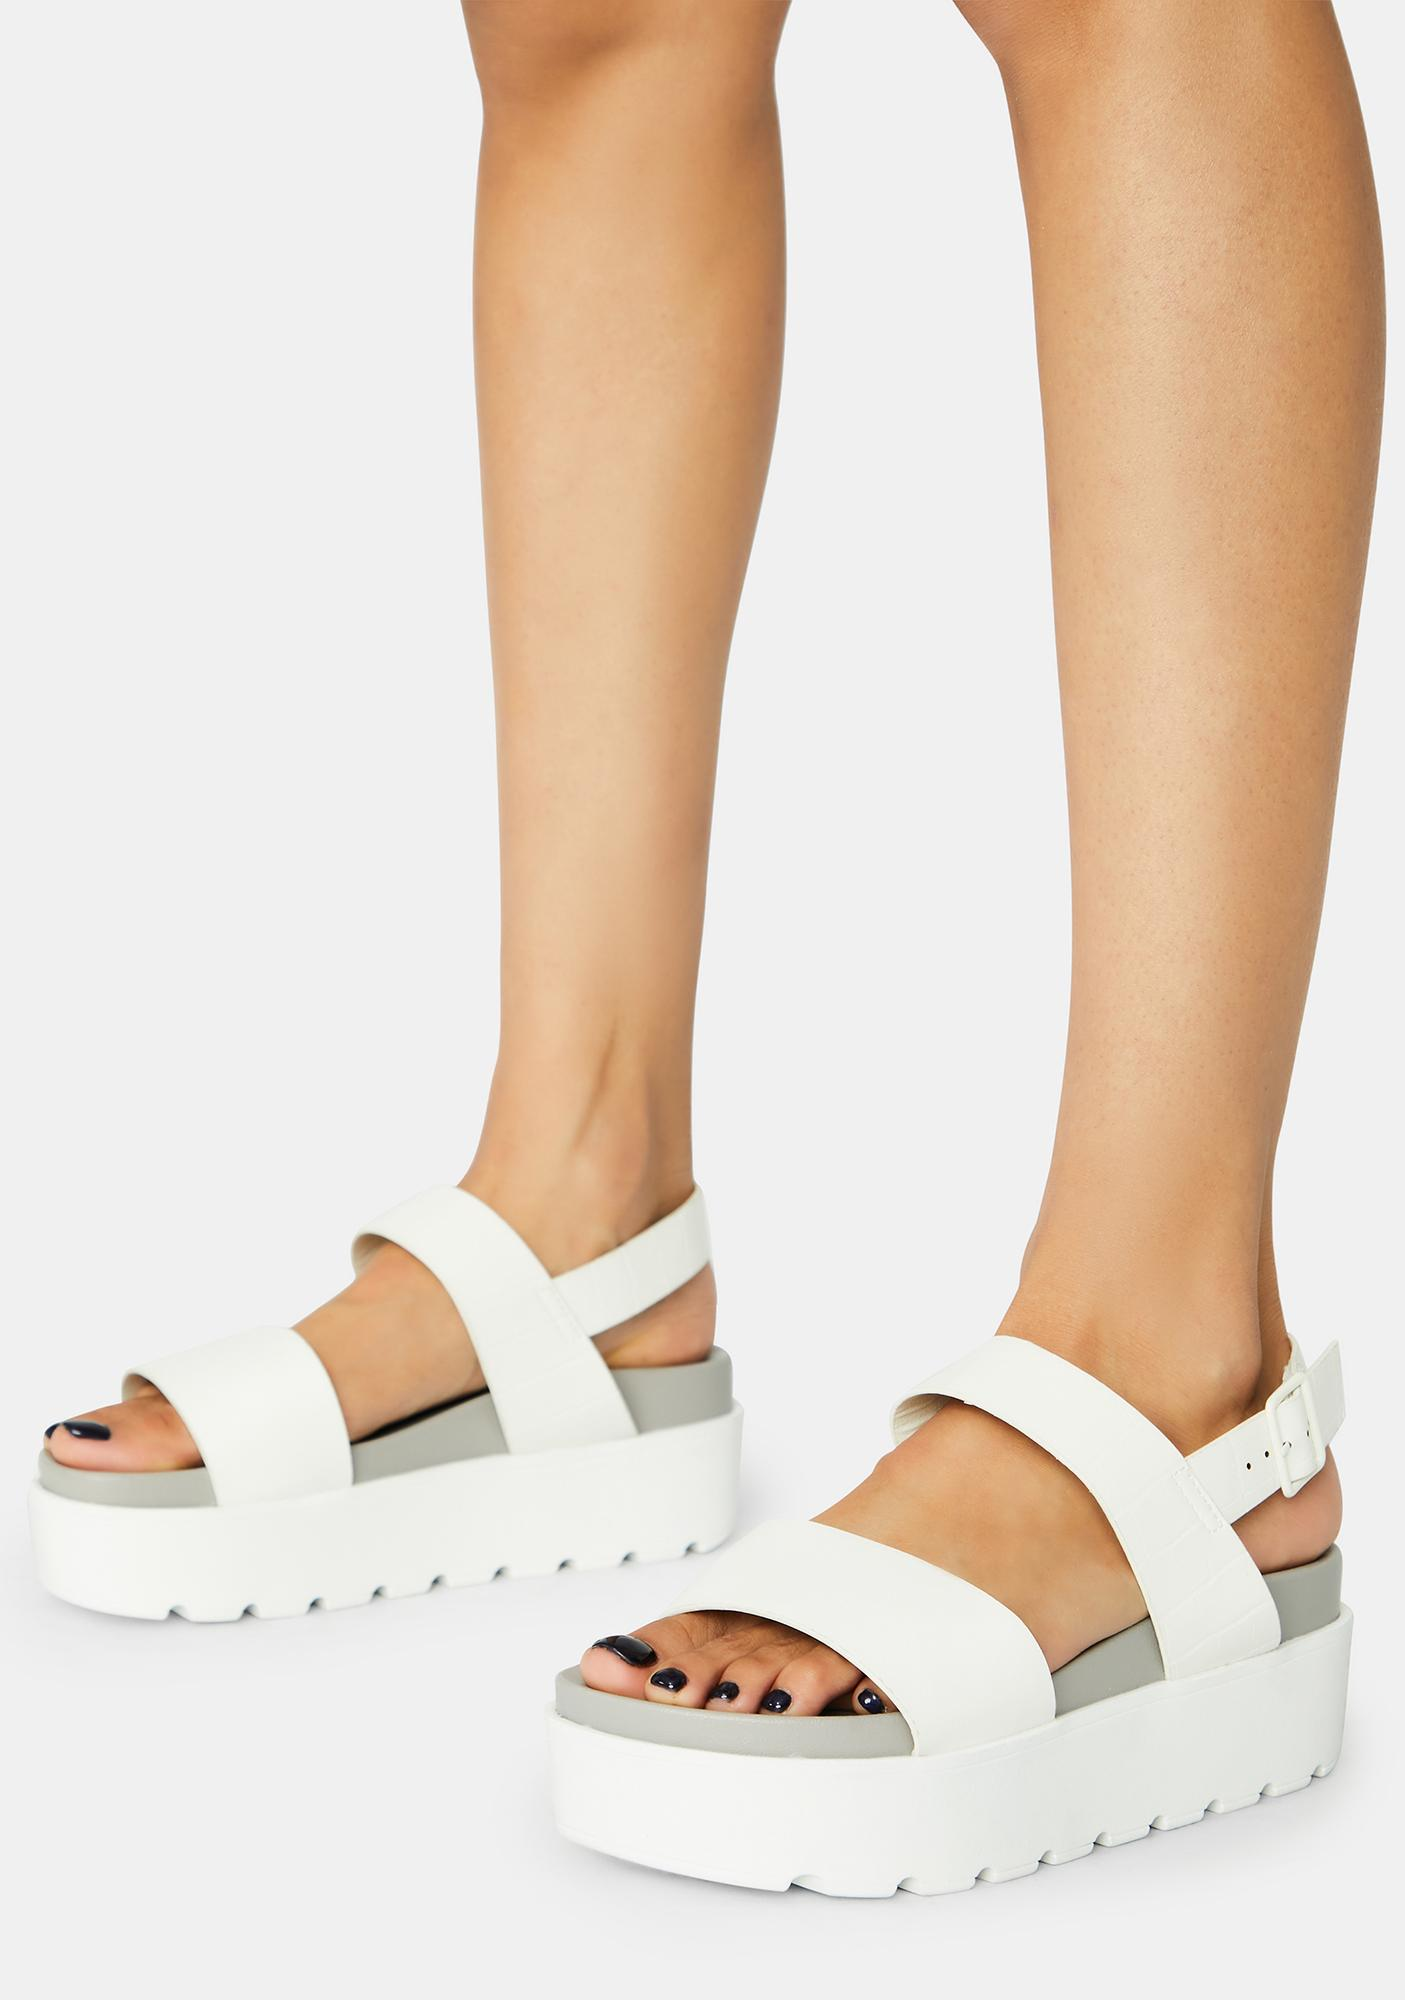 Lost Without You Platform Sandals